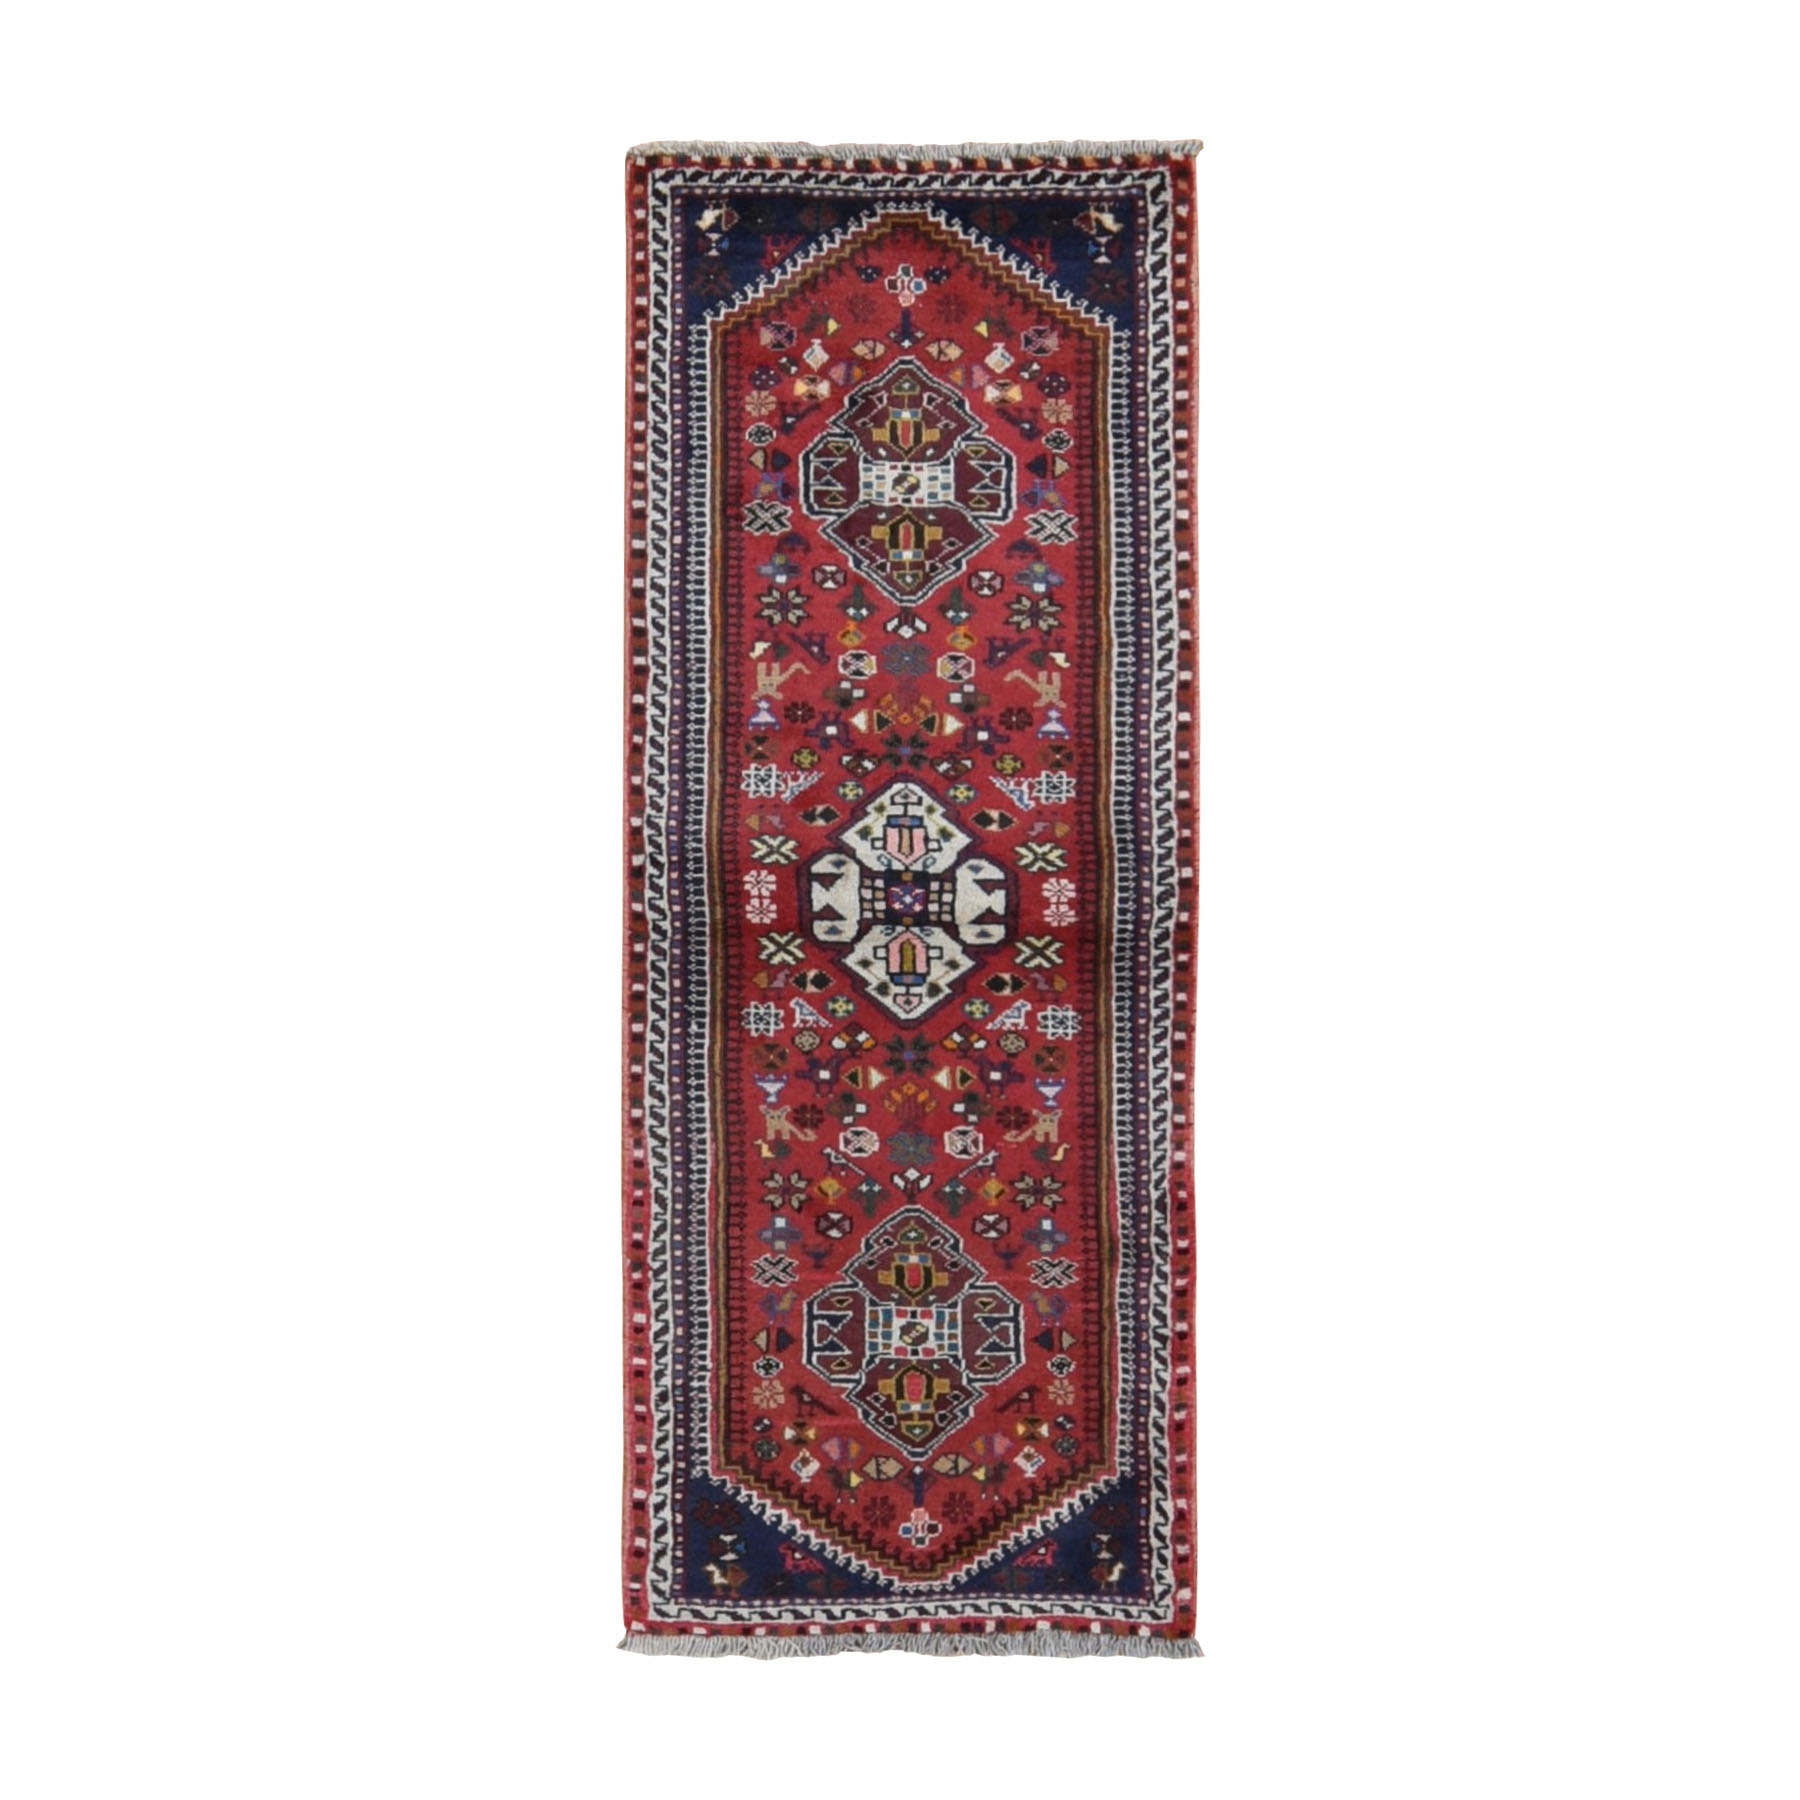 "2'3""x6'3"" Red New Persian Shiraz With Birds Pure Wool Runner Hand Woven Oriental Rug"